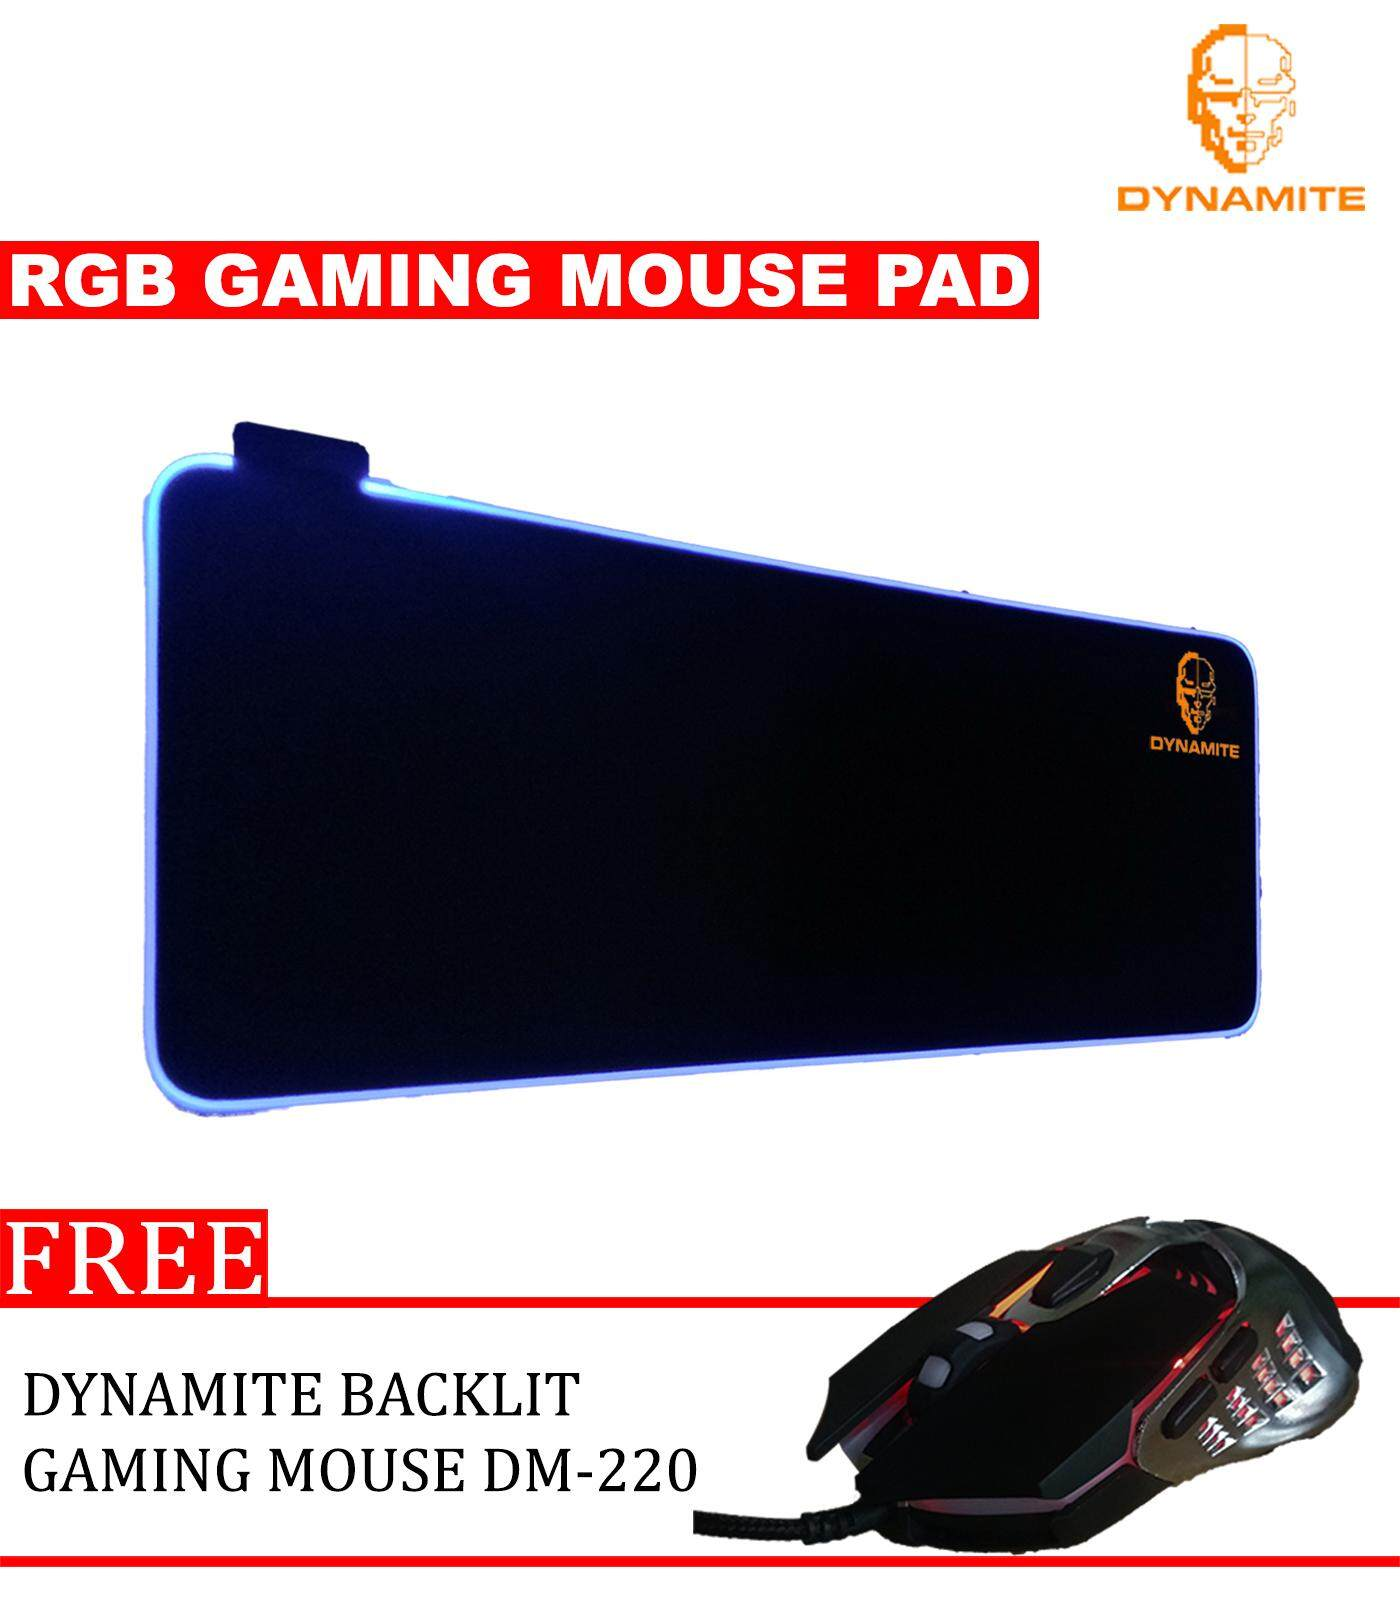 Dynamite RGB Gaming Mouse Pad and Backlit Gaming Mouse DM220 Malaysia